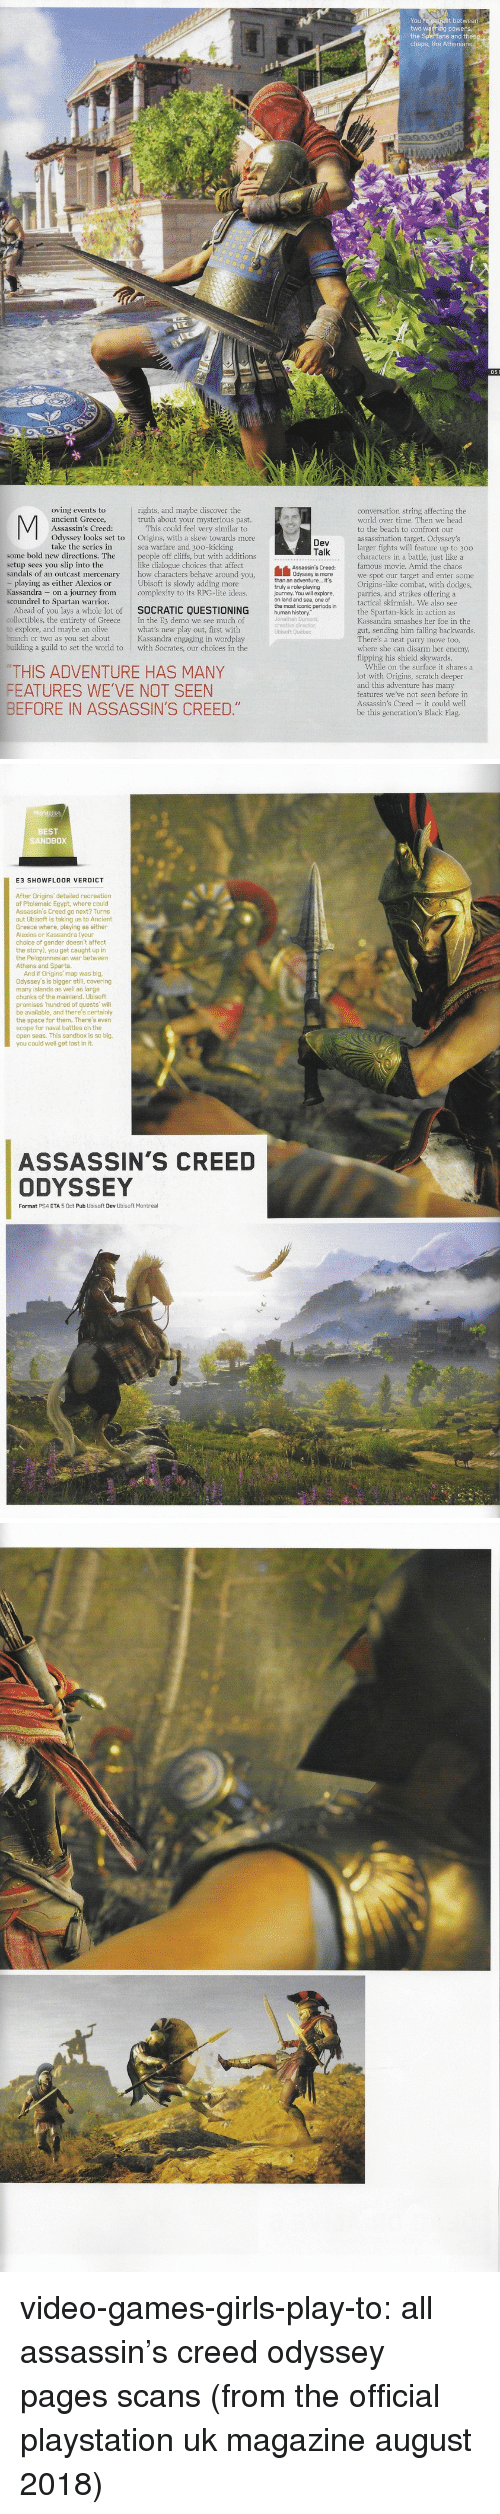 Ubisoft: oving events to  rights, and maybe discover the  conversation string affecting the  world over time. Then we head  to the beach to confront our  truth about your mysterious past.  Odyssey looks set to Origins, with a skew towards more  some bold new directions. The people off cliffs, but with additions  sandals of an outcast mercenary how characters behave around you,  This could feel very similar to  take the series insea warfare and 300-kicking  larger fights will feature up to 300  characters in a battle, just like a  famous movie. Amid the chaos  we spot our target and enter some  Origins-like combat, with dodges,  parries, and strikes offering a  tactical skirmish. We also see  the Spartan-kick in action as  Kassandra smashes her foe in the  gut, sending him falling backwards.  There's a neat parry move too,  where she can disarm her enemy,  flipping his shield skywards.  setup sees you slip into the  like dialogue choices that affect  playing as either Alexios or  Ubisoft is slowly adding more  Kassandra - on a journey from complexity to its RPG-lite ideas.  coun ar  tactical  scoundrel to Spartan warrior  Ahead of you lays a whole lot of SOCRATIC QUESTIONING human history- Periods n  collectibles, the entirety of Greece In the E3 demo we see much of  what's new play out, first with  Kassandra engaging in wordpla  building a guild to set the world to with Socrates, our choices in the  explore, and maybe an olive  branch or two as you set about  While on the surface it shares a  lot with Origins, scratch deeper  and this adventure has many  features we've not seen before in  Assassin's Creed - it could well  be this generation's Black Flag.  THIS ADVENTURE HAS MANY  FEATURES WE'VE NOT SEEN  BEFORE IN ASSASSIN'S CREED   ion  BEST  SANDBOX  E3 SHOWFLOOR VERDICT  Assassin's Creed go next? Turns  out Ubisoft is taking us to Ancient  Alexios or Kassandra (your  choice of gender doesn't affect  the story), you get caught up in  And if Origins' map was big,  